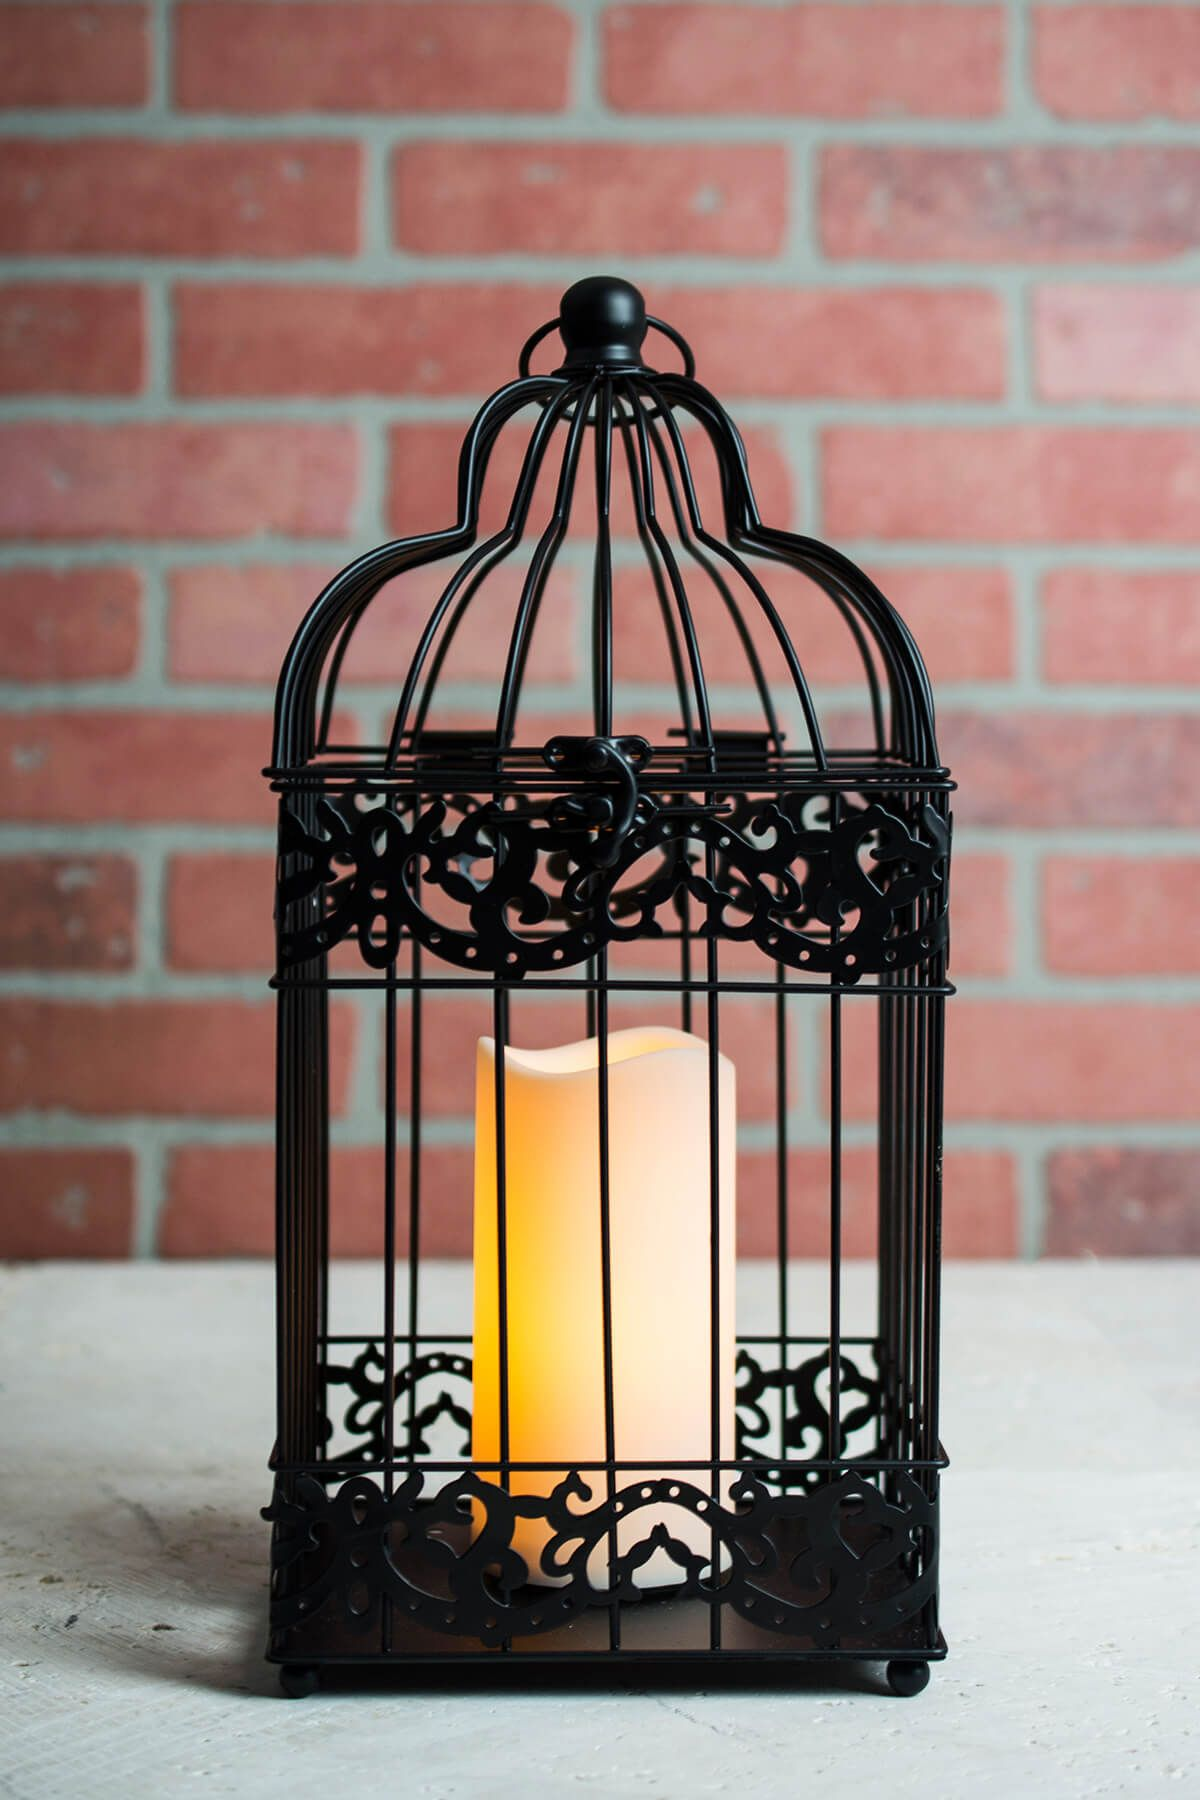 Black Bird Cage Candle Lantern Battery Operated 15in Bird Cage Candle Candle Lanterns Black Bird Cage